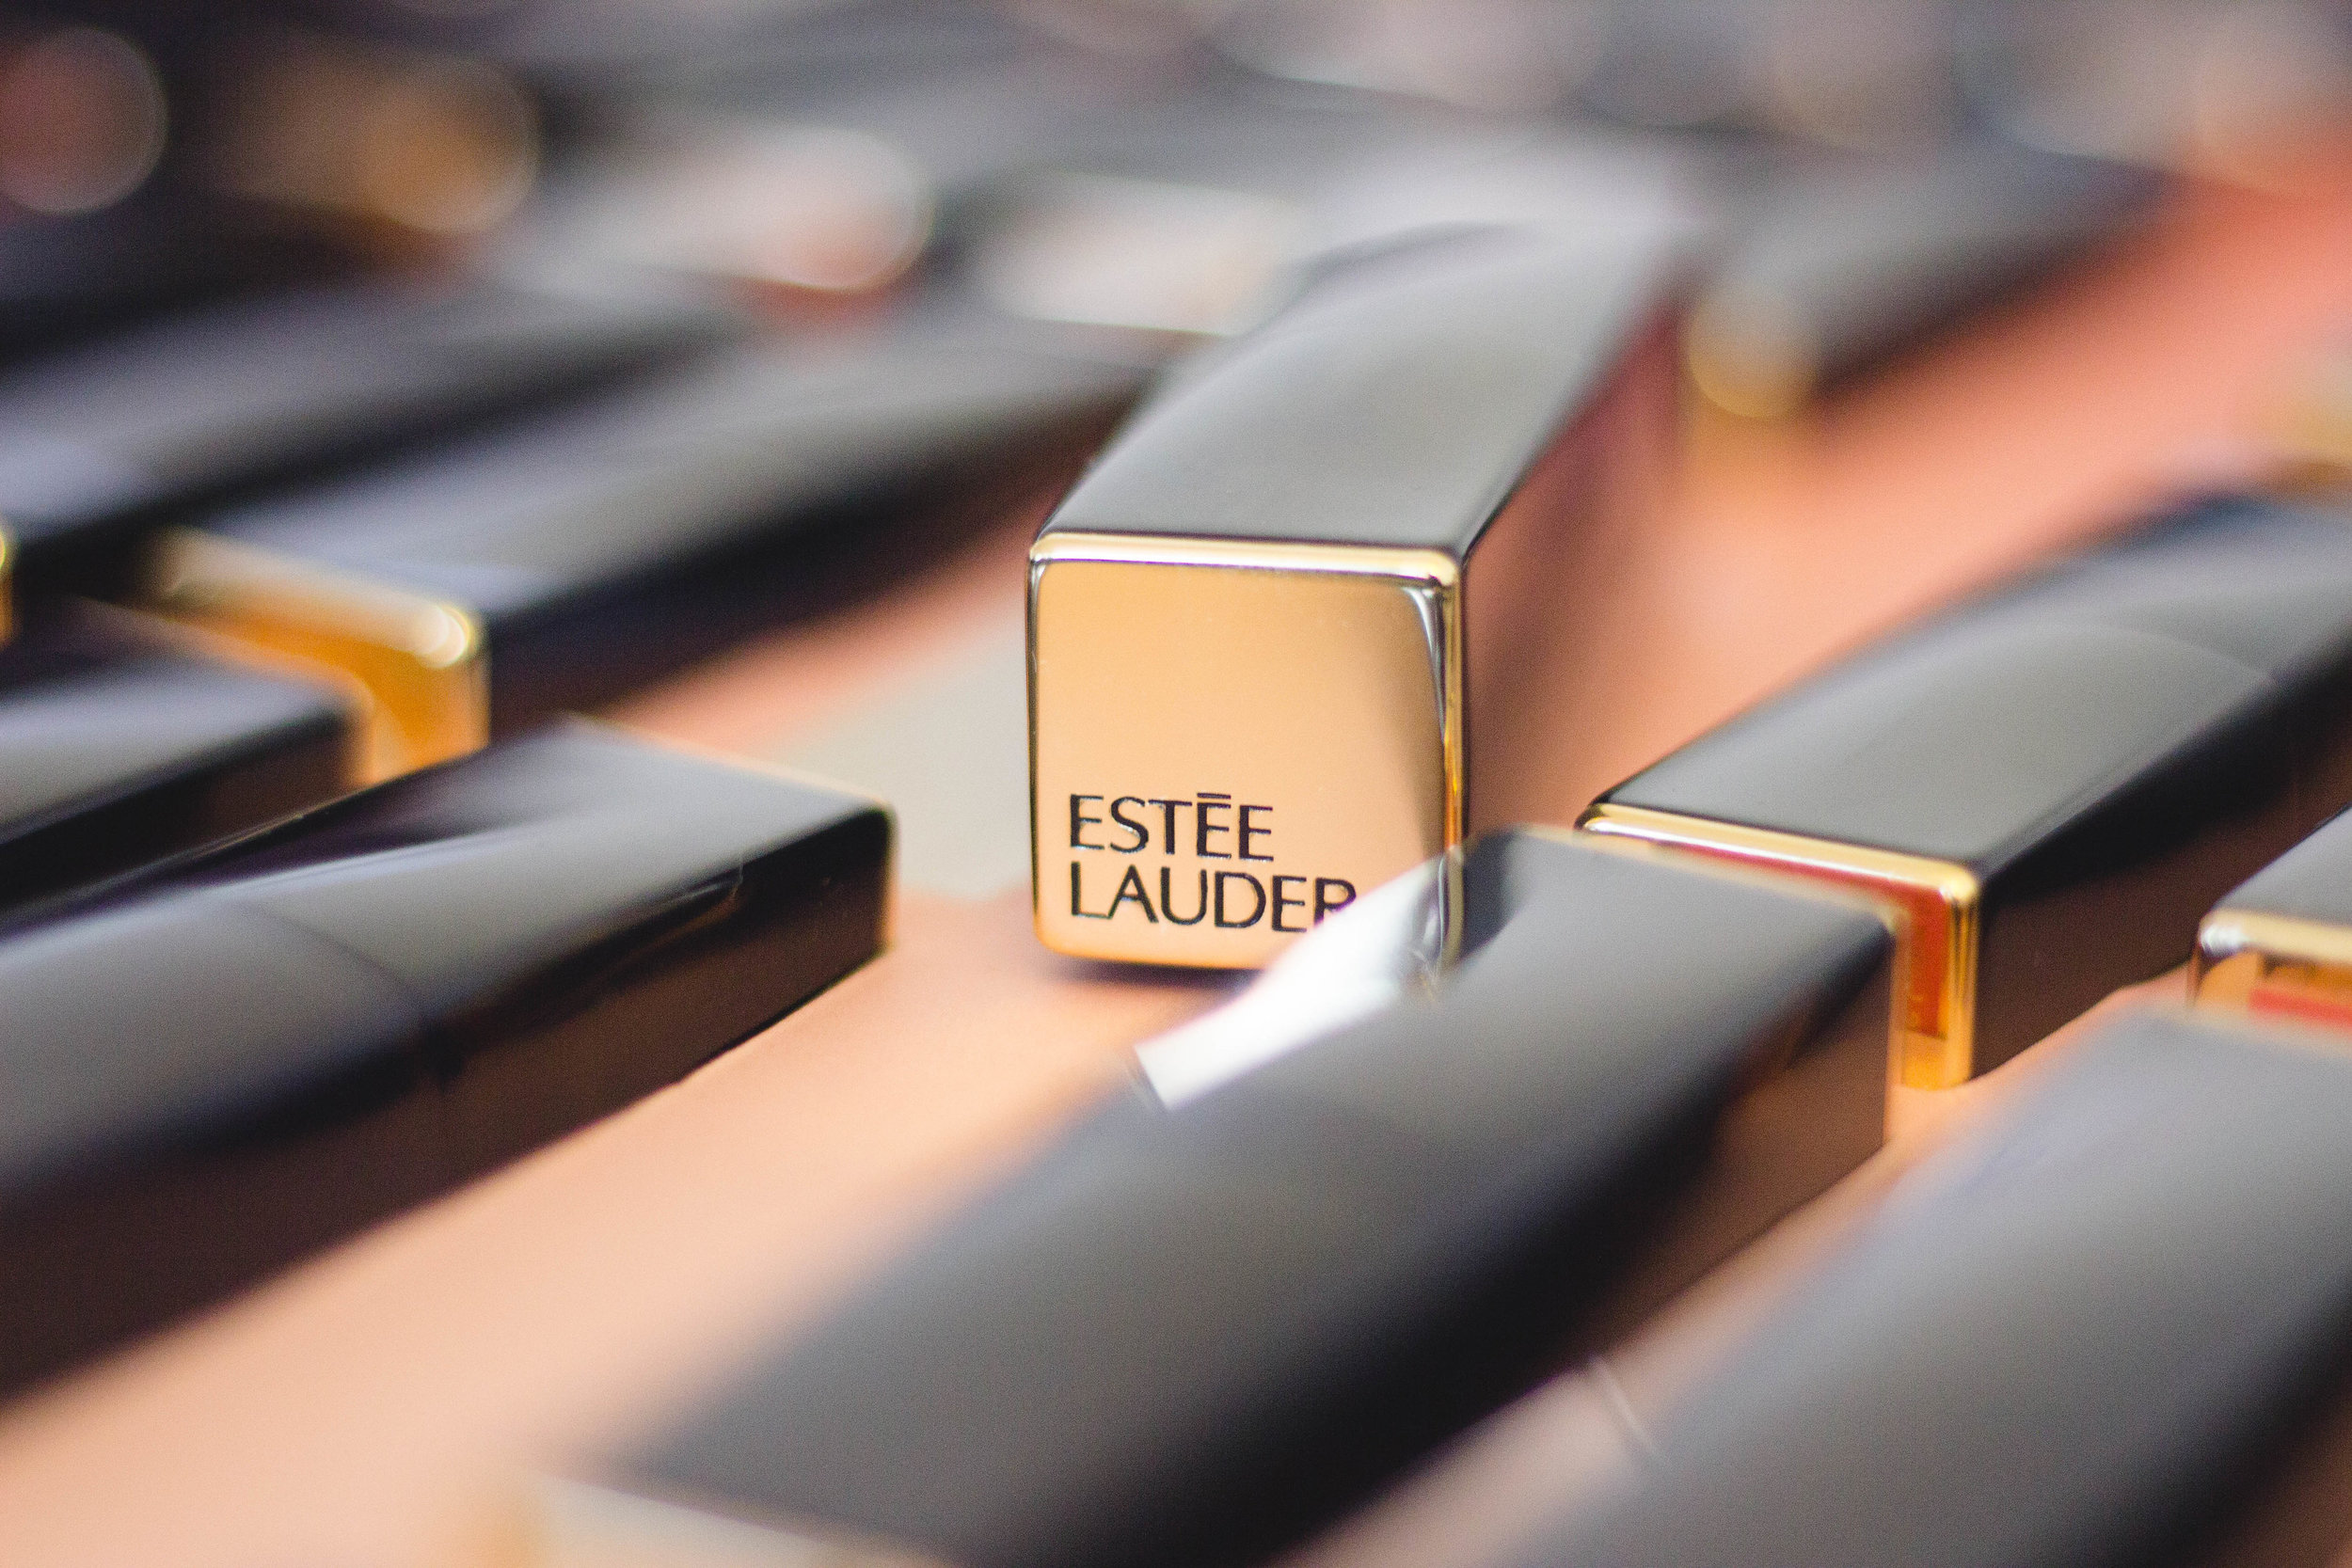 The Best Gift I've Ever Received As A Blogger Estee Lauder Esther Santer Fashion Blog NYC Street Style Blogger Outfit Trendy Colors Shades Finishes  Shine Matte Shimmer Red Pink Purple Berry Summer Winter Lip Gloss Girl Women Shop Pretty Beauty Makeup.jpg